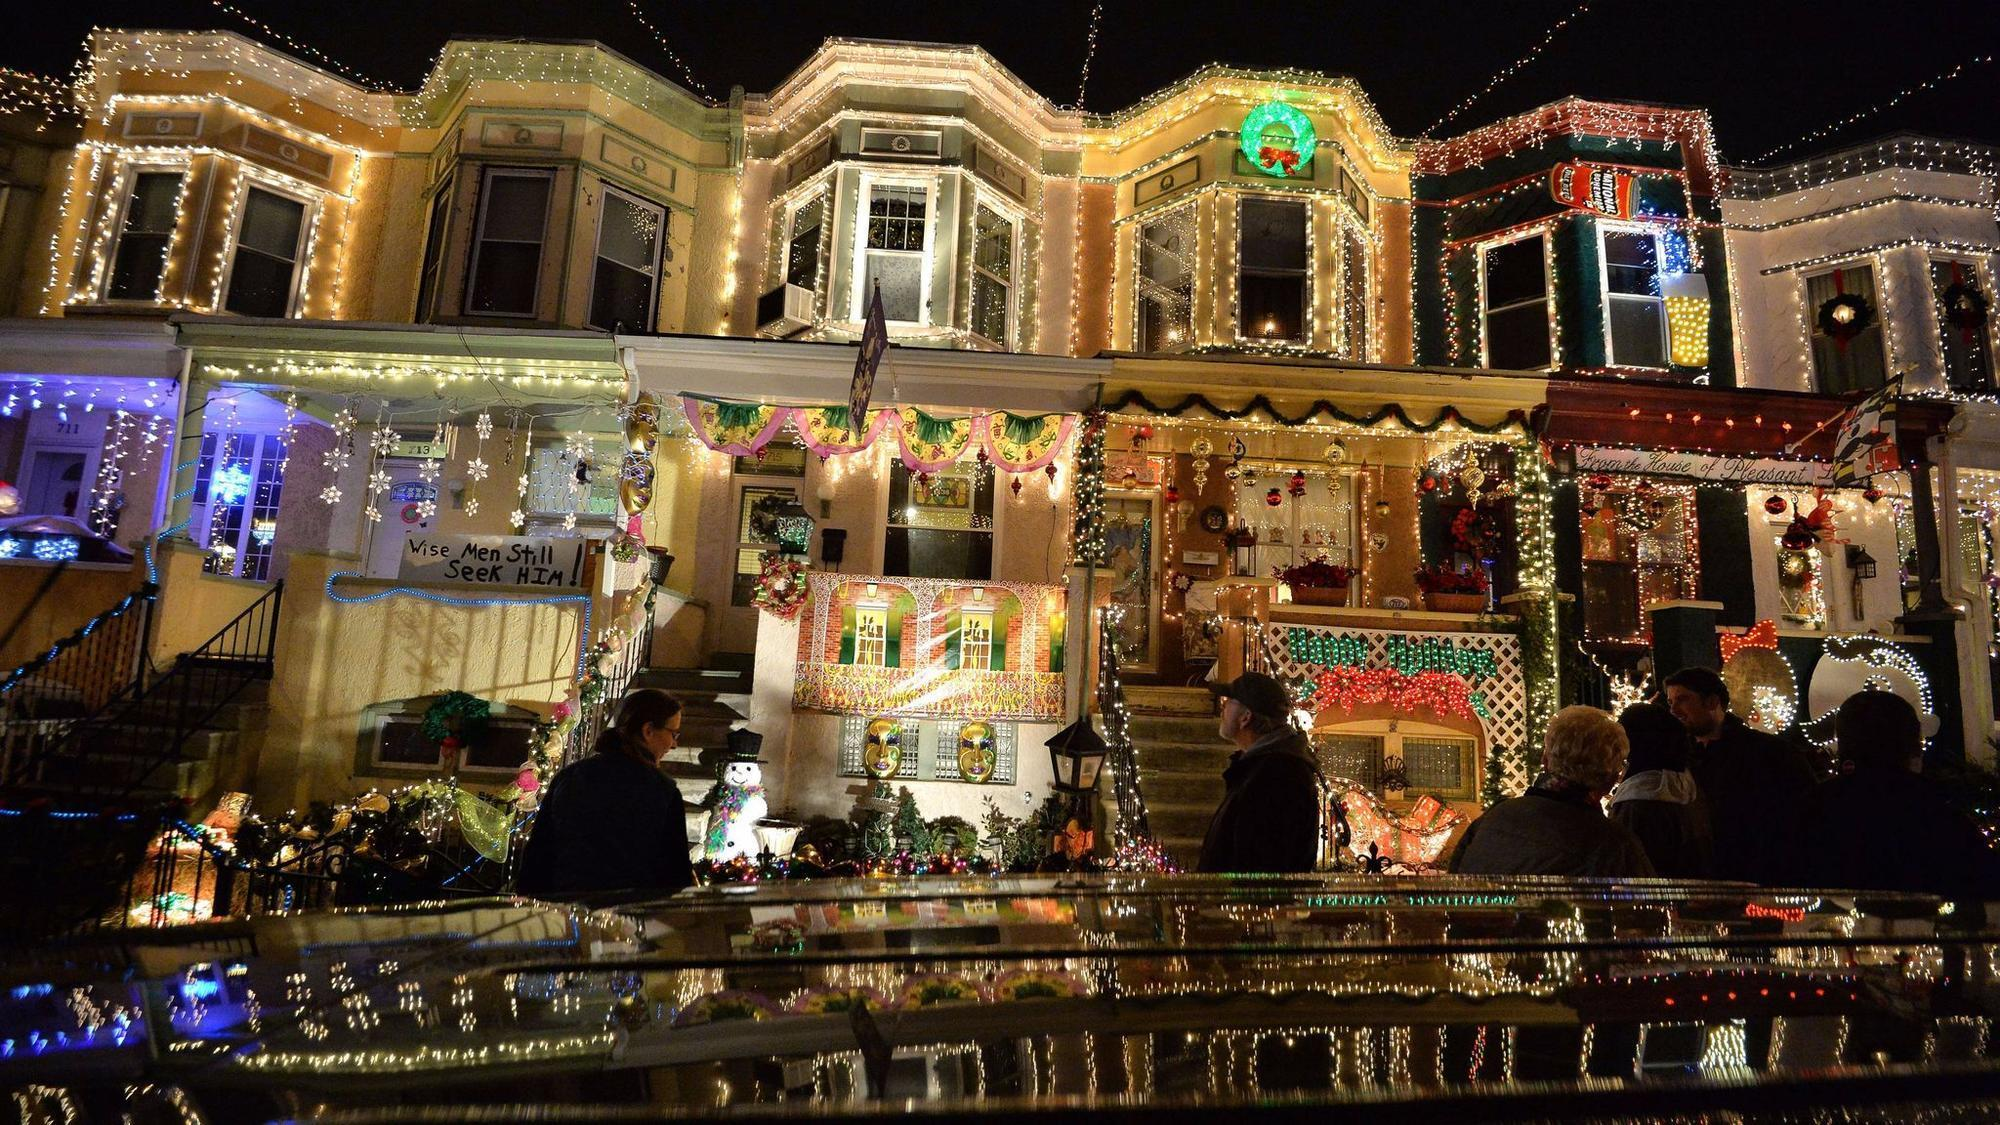 Hampden S Miracle On 34th Street Named Most Outrageous